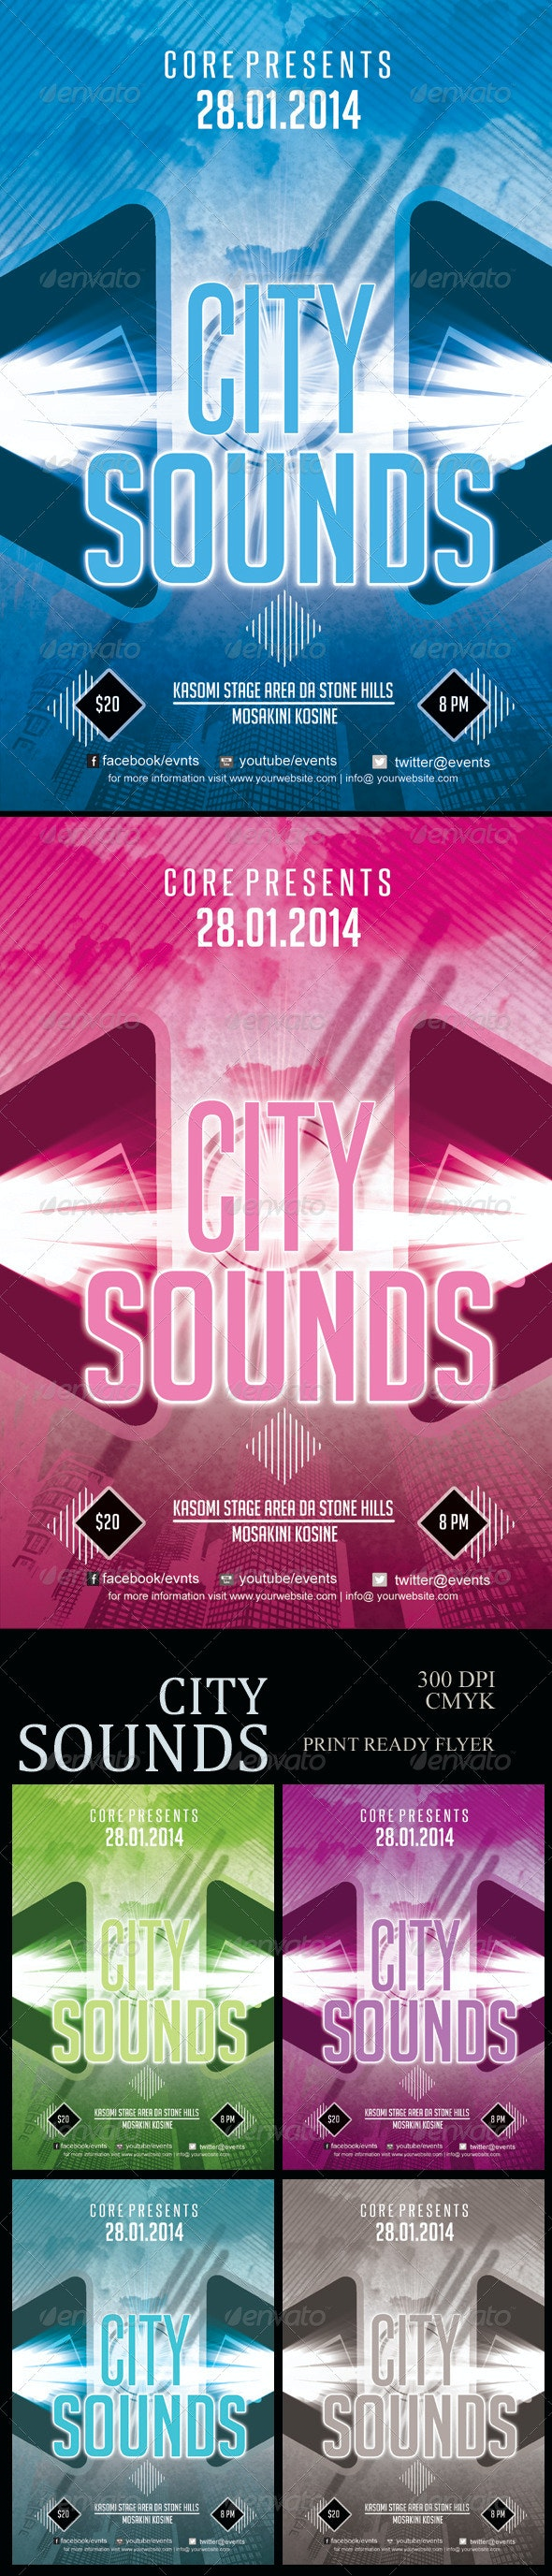 City Sounds Flyer - Clubs & Parties Events